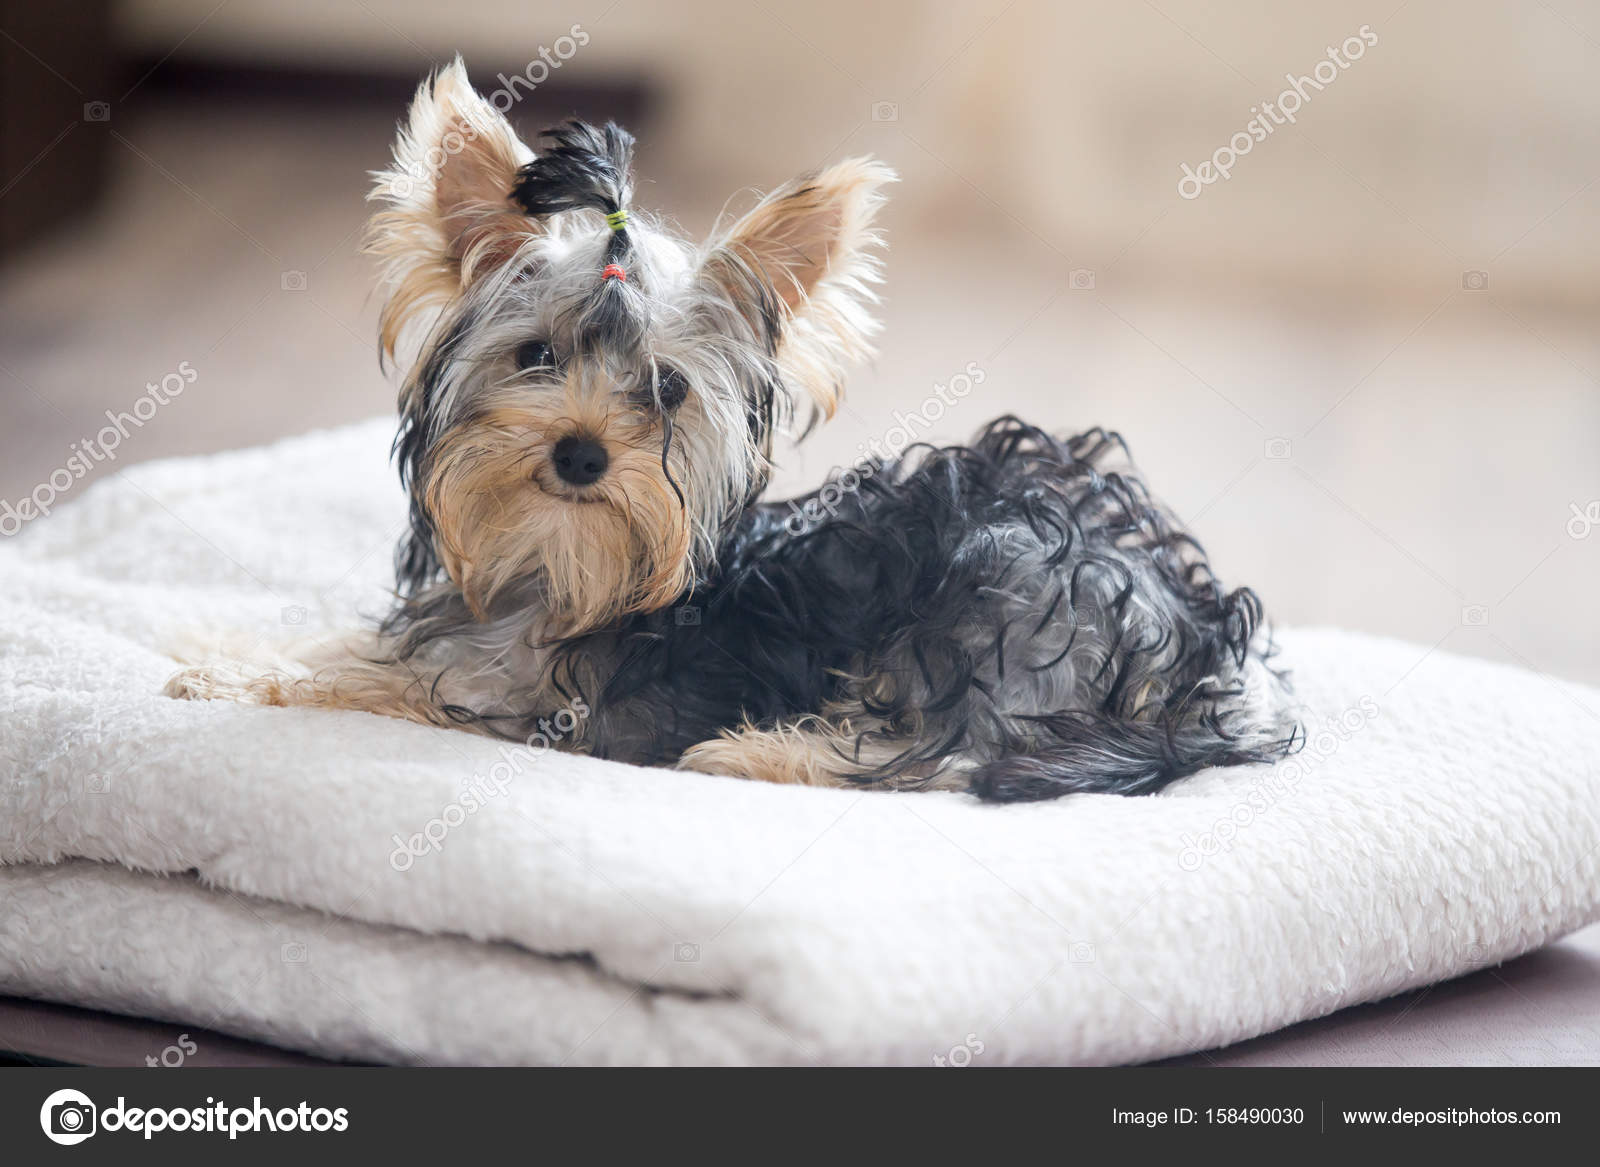 Must see Terrier Bow Adorable Dog - depositphotos_158490030-stock-photo-cute-little-dog-with-bow  You Should Have_784257  .jpg